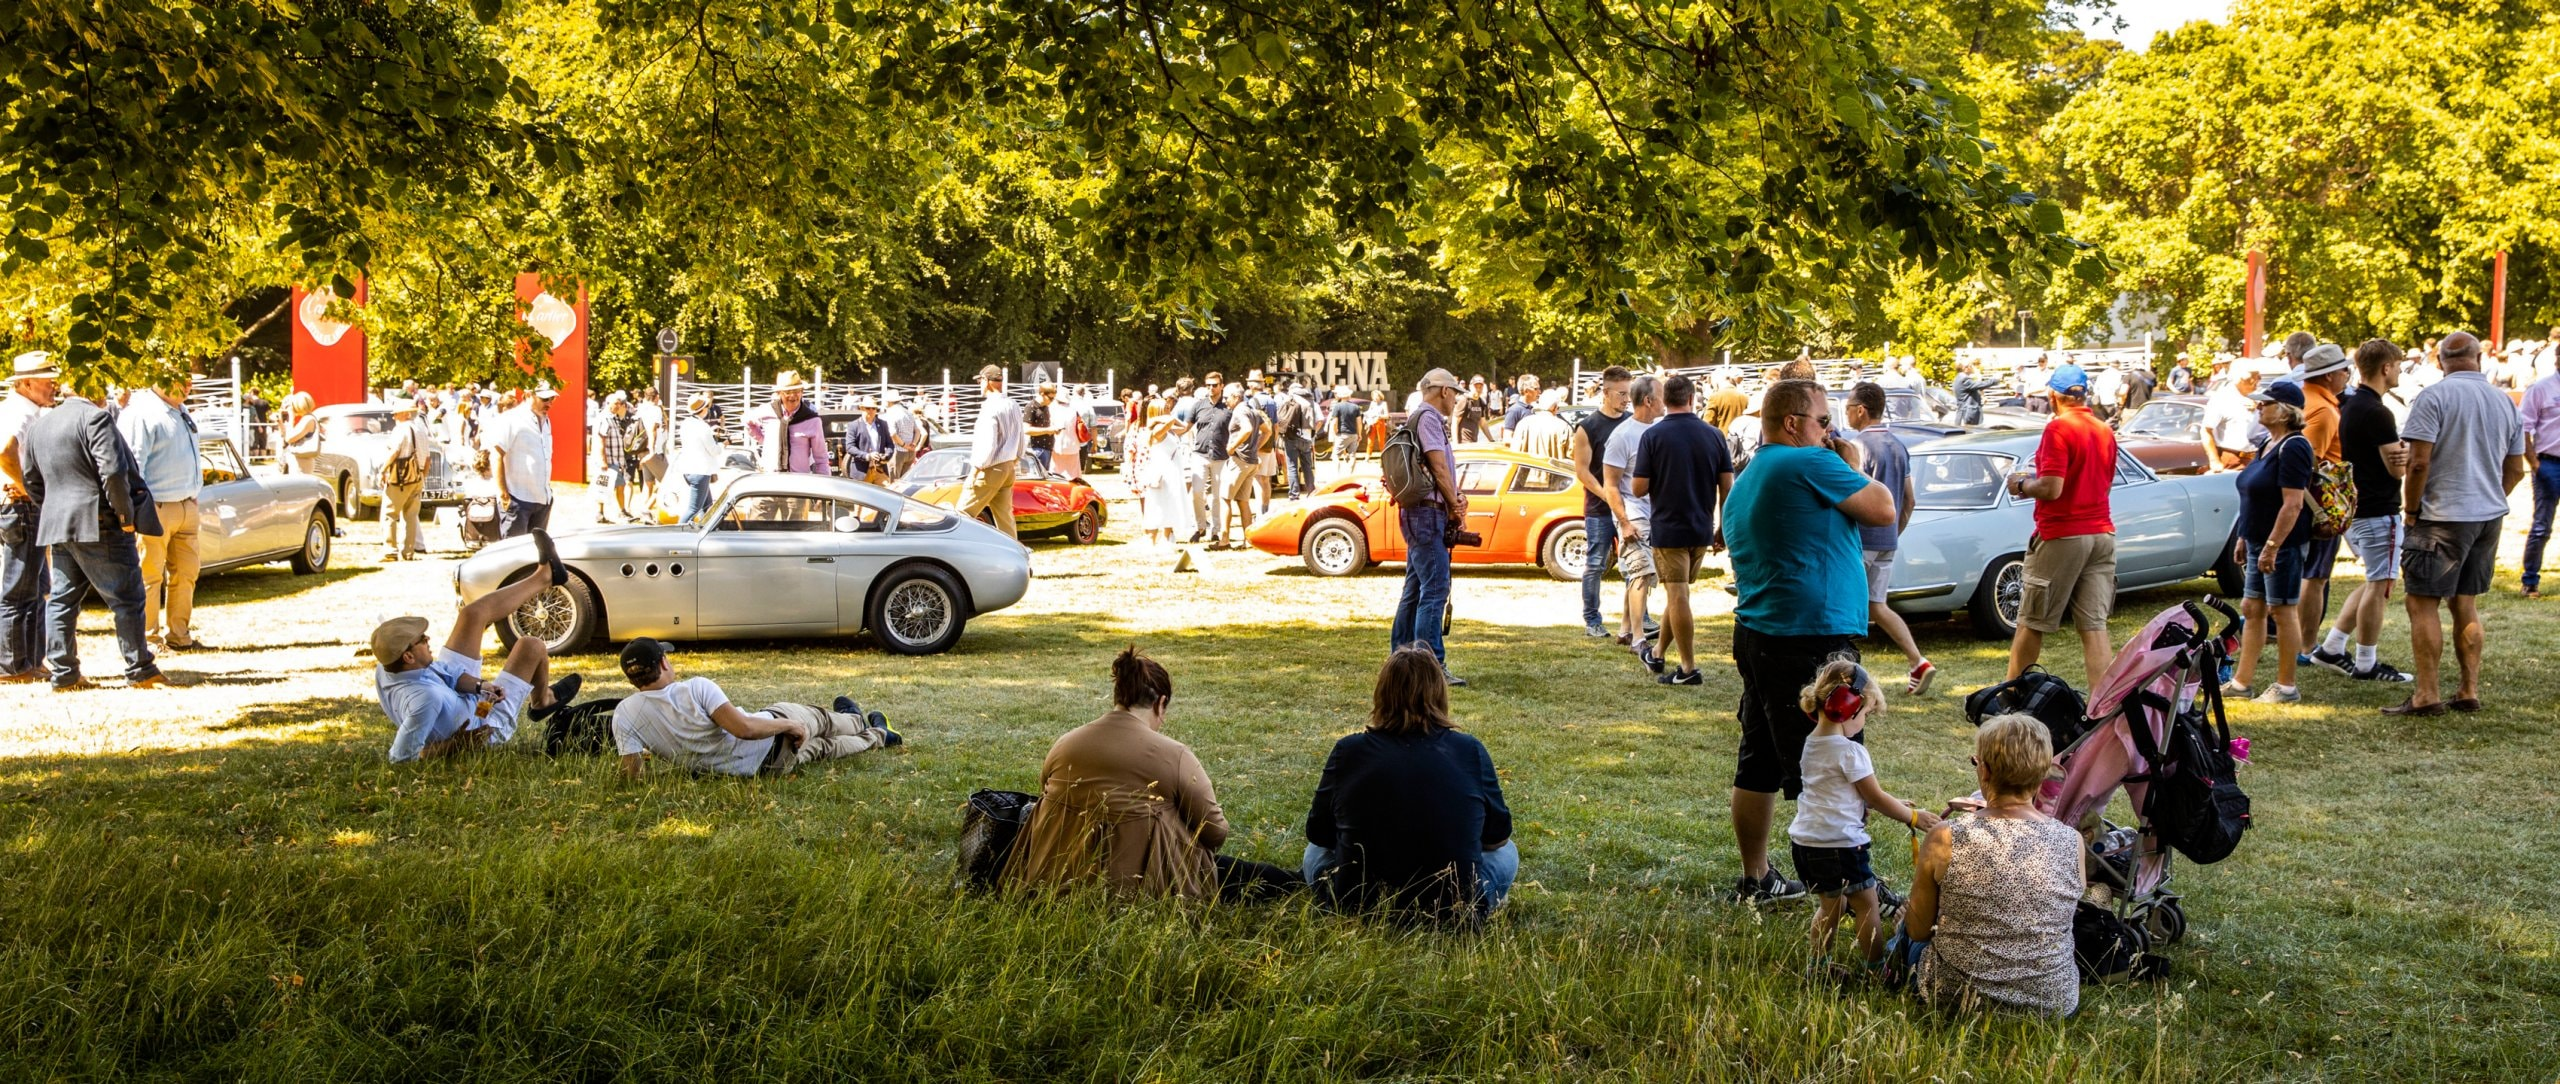 """The world's largest motorised garden party"": the Goodwood Festival of Speed is stylish – and offers hands-on historical motorsports."